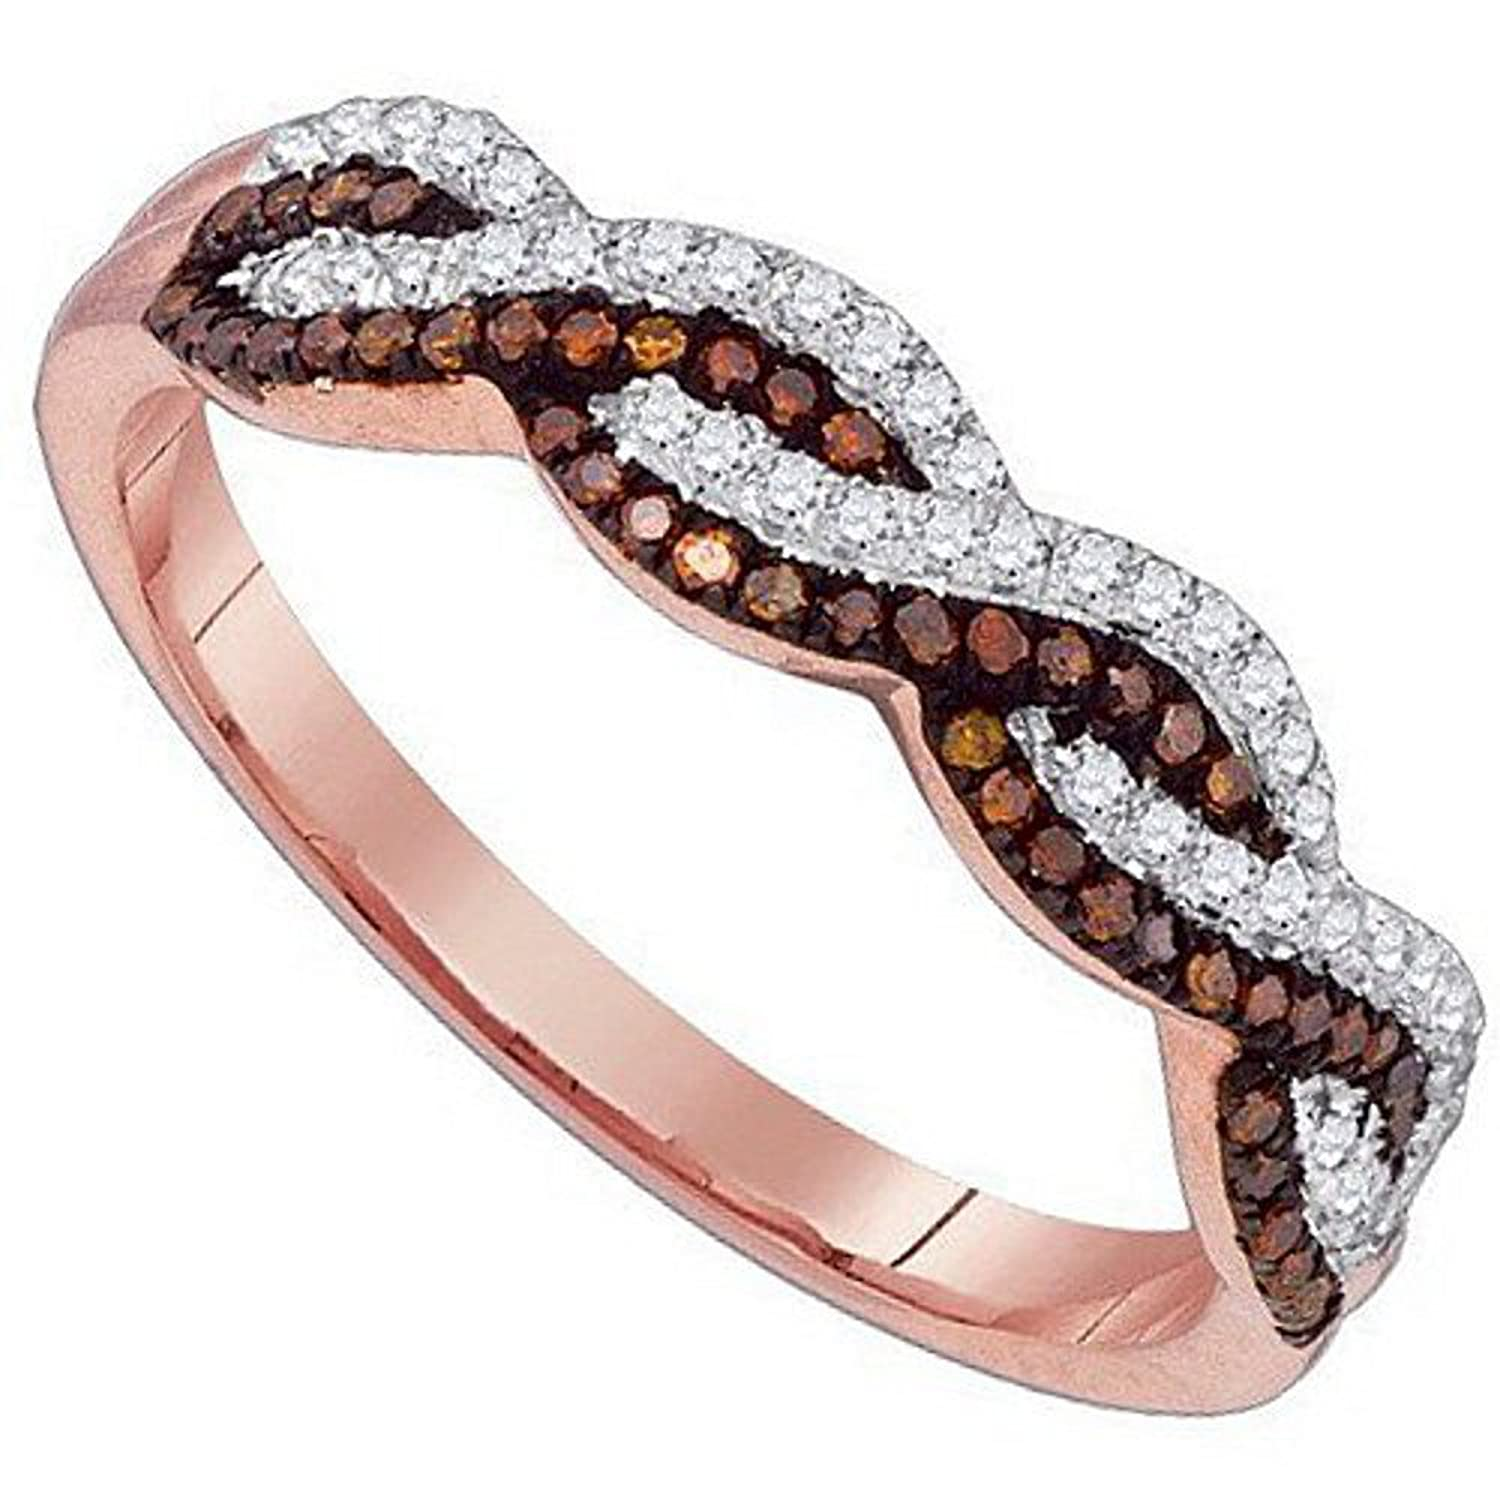 infinity band. amazon.com: infinity band ring cognac white brown diamond rose gold promise anniversary 1/5cttw(i2/i3, i/j): midwest jewellery: jewelry